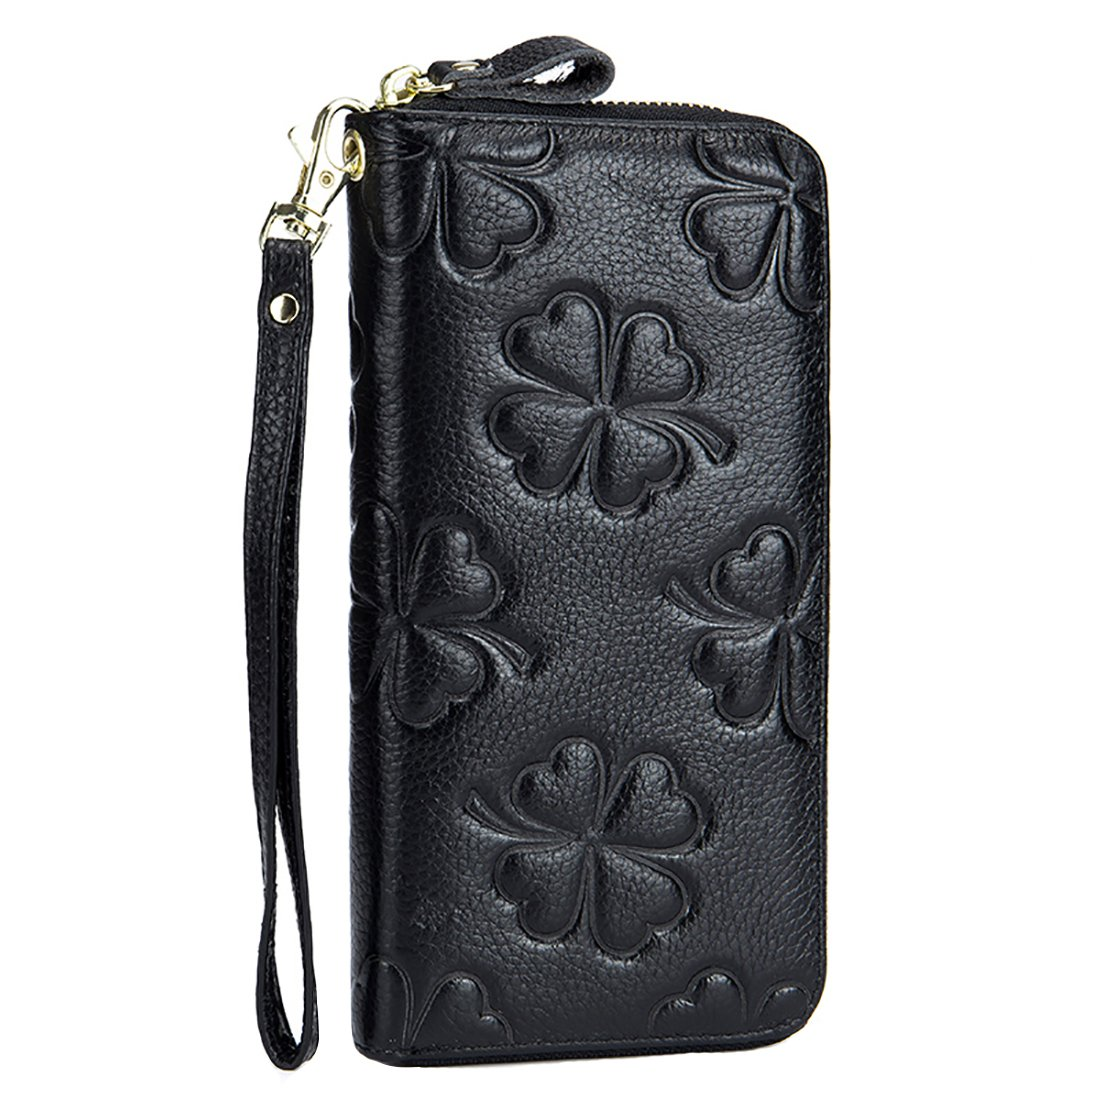 HASFINE Women Genuine Leather Long Wallet RFID Blocking Clutch Bag Wristlet Handbag Embossed Purse Credit Card Holder (Black)